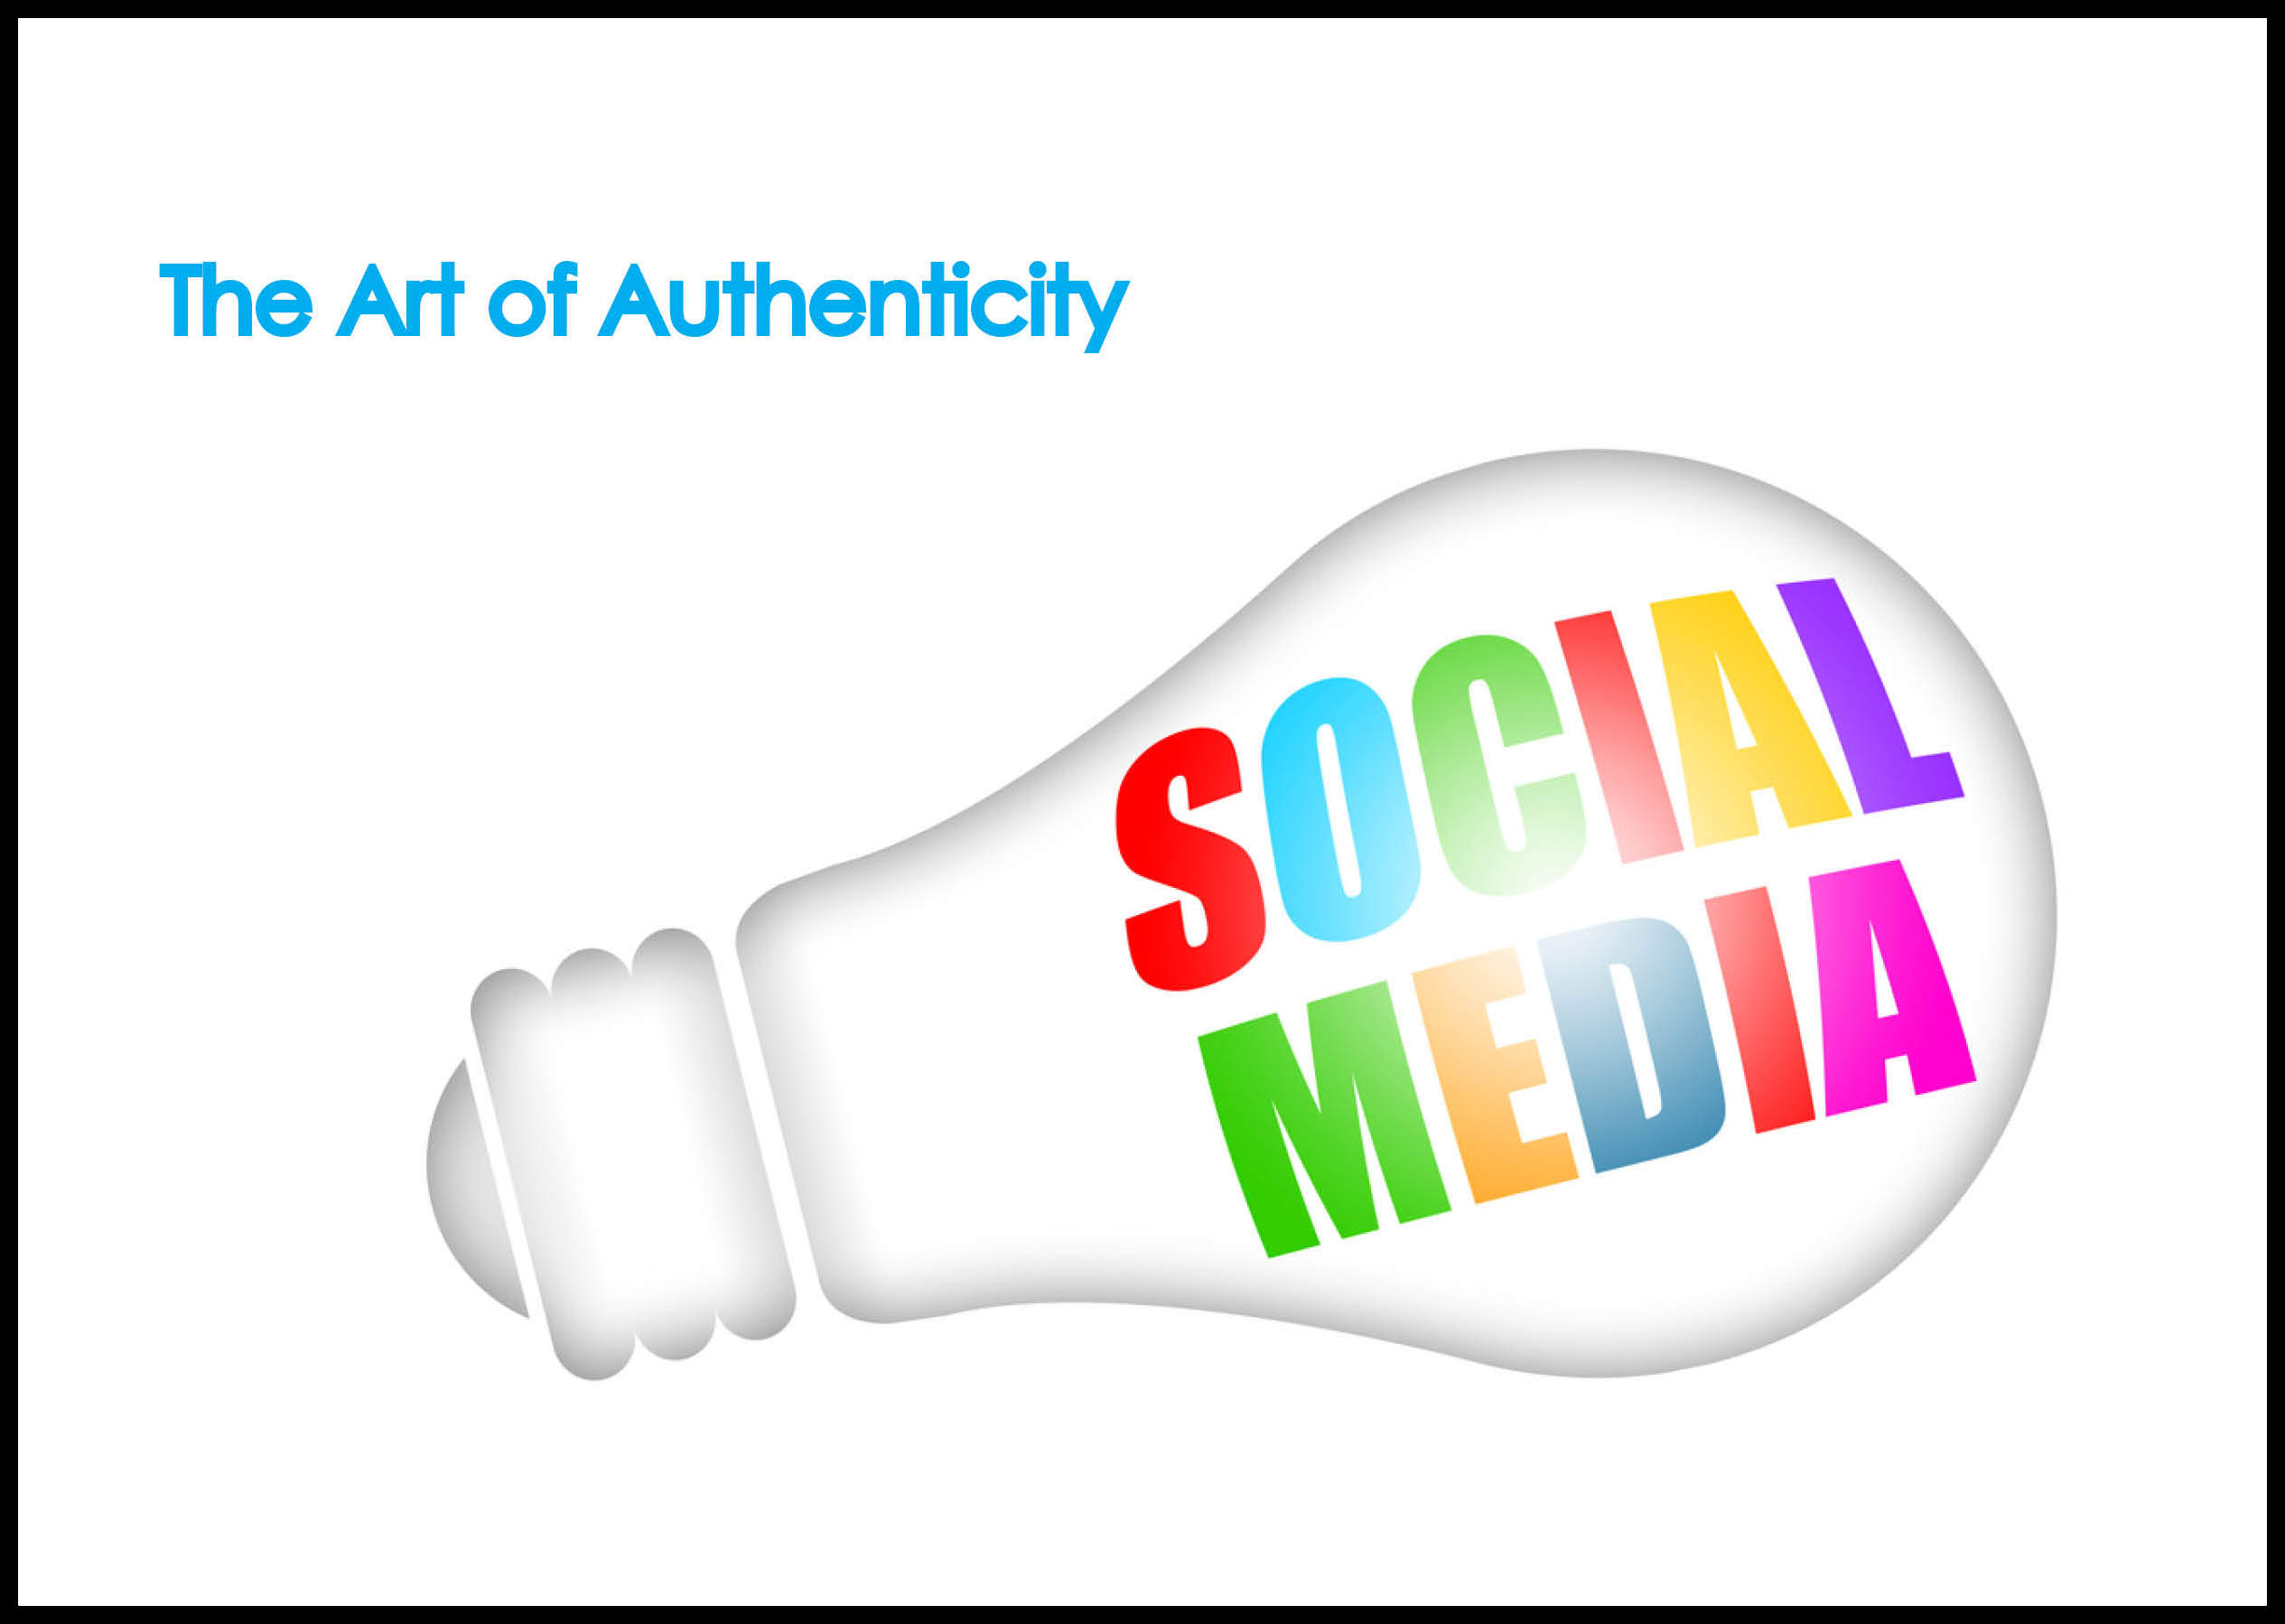 Social Media - The Art of Authenticity